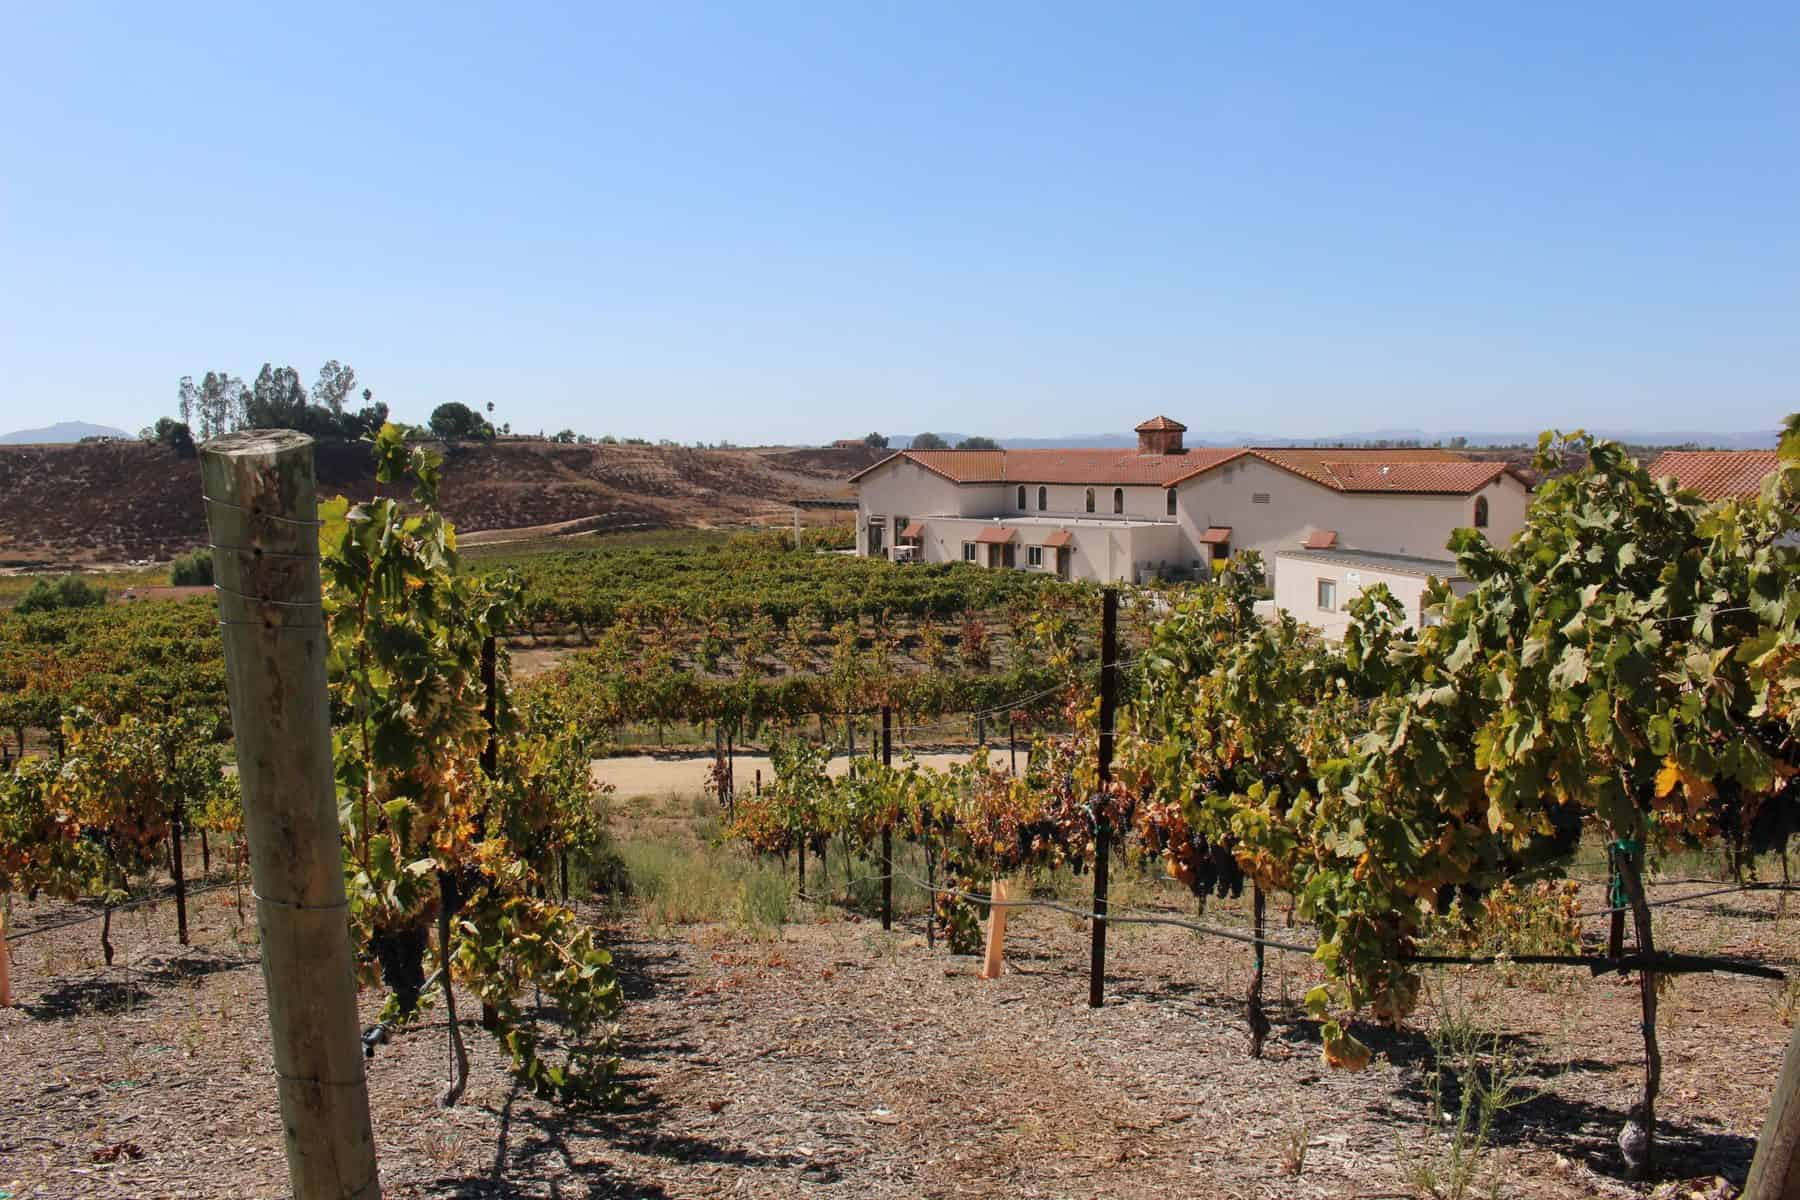 Temecula Weekend Getaway Itinerary